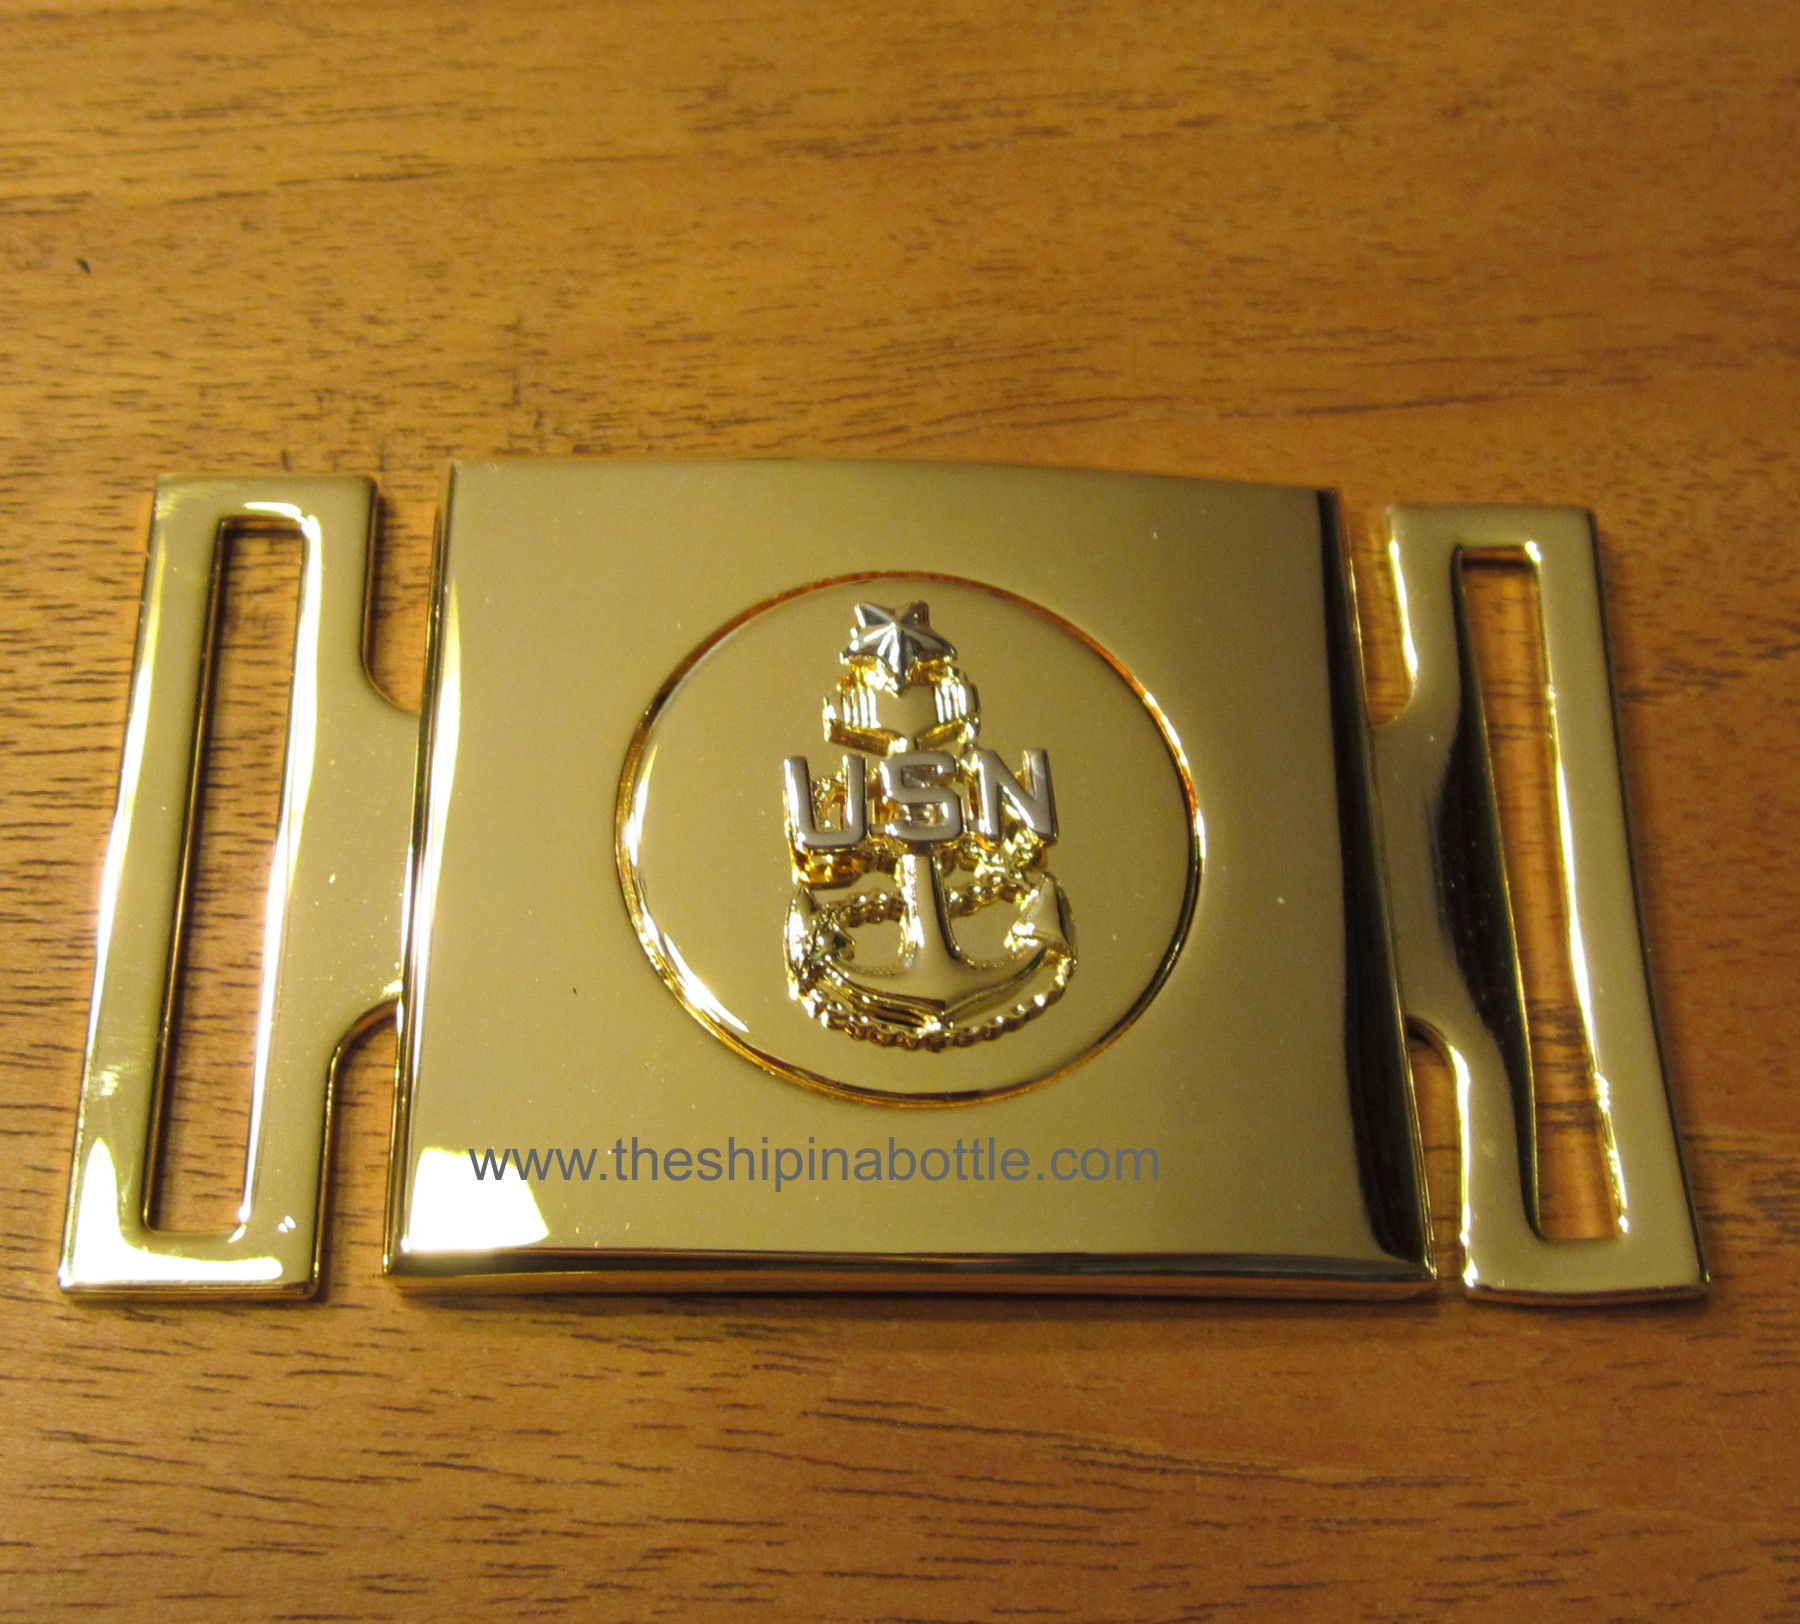 Newly Authorized SCPO Buckle for Belt worn with CPO Cutlass